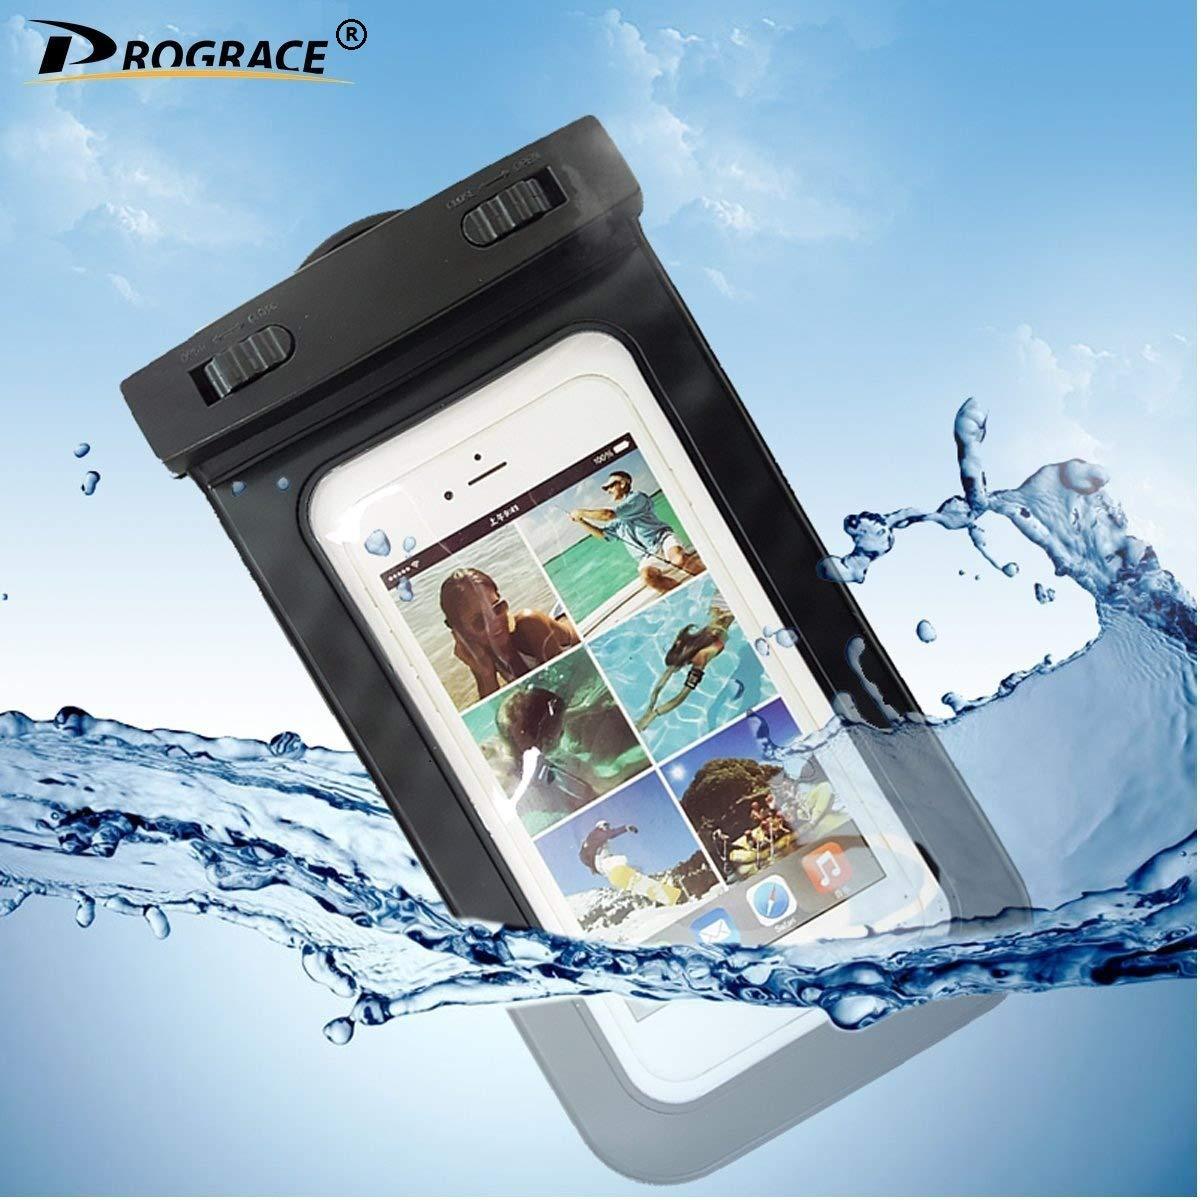 PROGRACE Waterproof Case Cellphone Dry Bag for Apple iPhone 6S 6, 6S Plus, SE 5S 7, Samsung Galaxy S7, S6 Note 5 4, HTC LG Sony Nokia Motorola up to 6.0'' Diagonal (Black) by PROGRACE